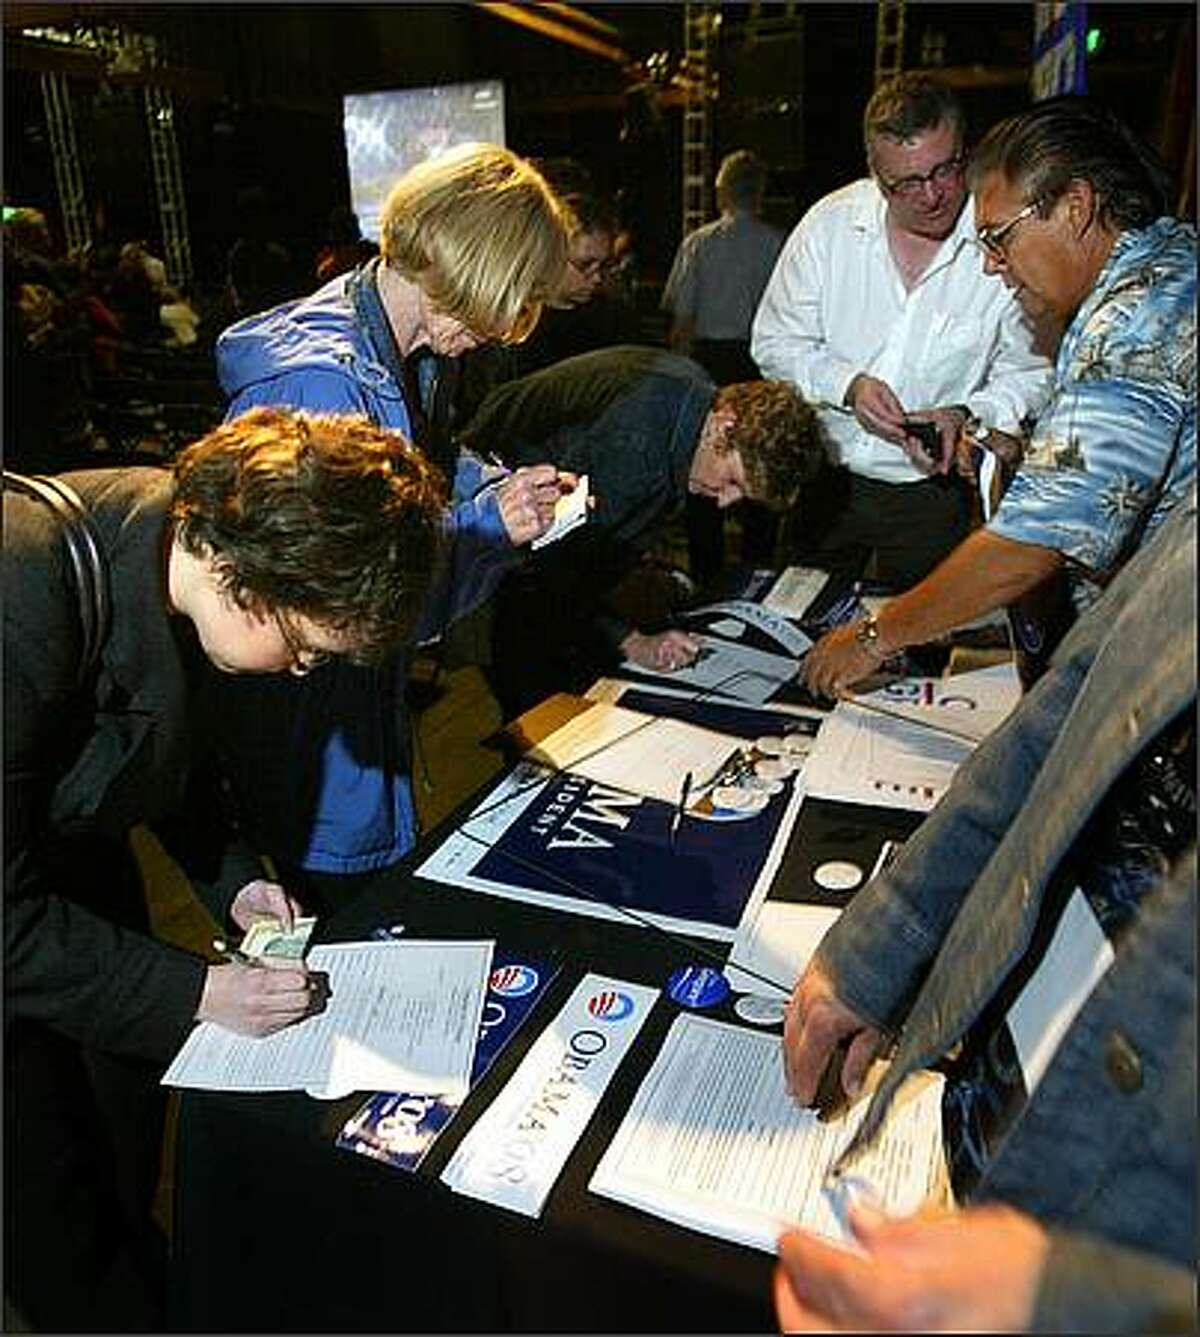 Rebecca Partington from Seattle (left front) signs up to receive bumper stickers. Senator Obama's Campaign for Change hosts a party at the Showbox SoDo in Seattle for supporters to watch his speech on TV, broadcast from the National Democratic Convention in Denver, CO.